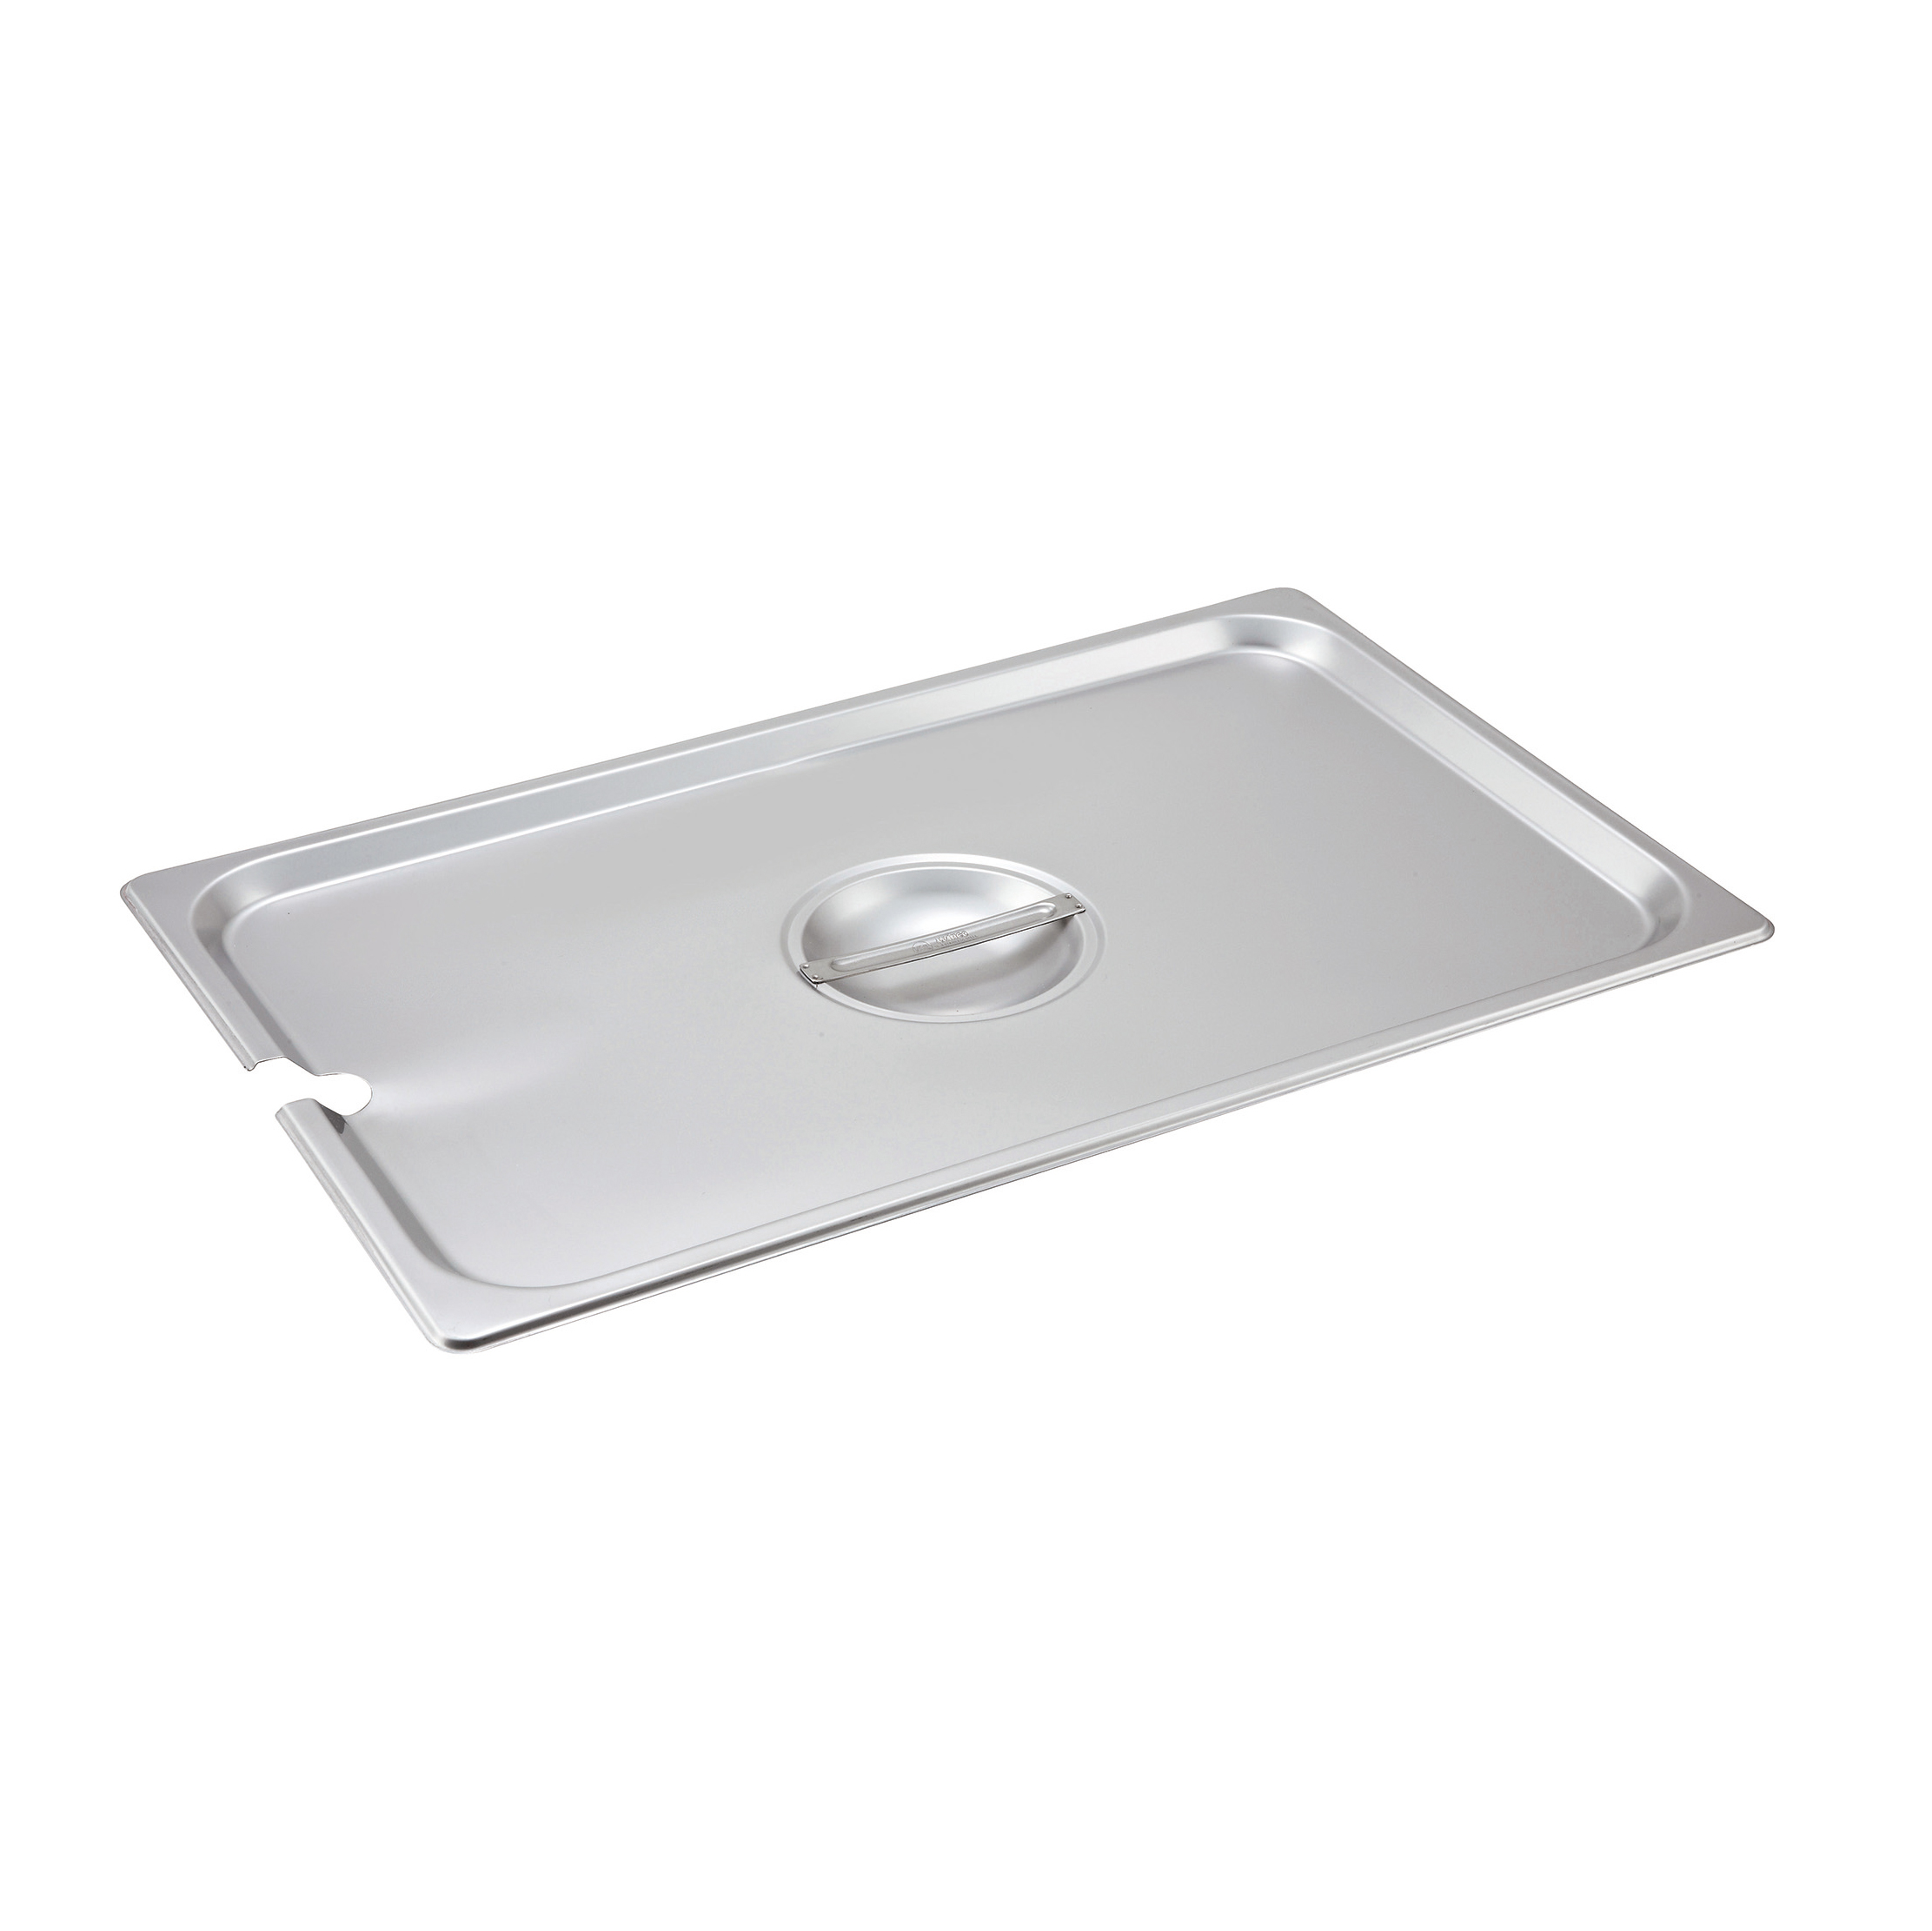 2400-1233 Winco SPCF steam table pan cover, stainless steel